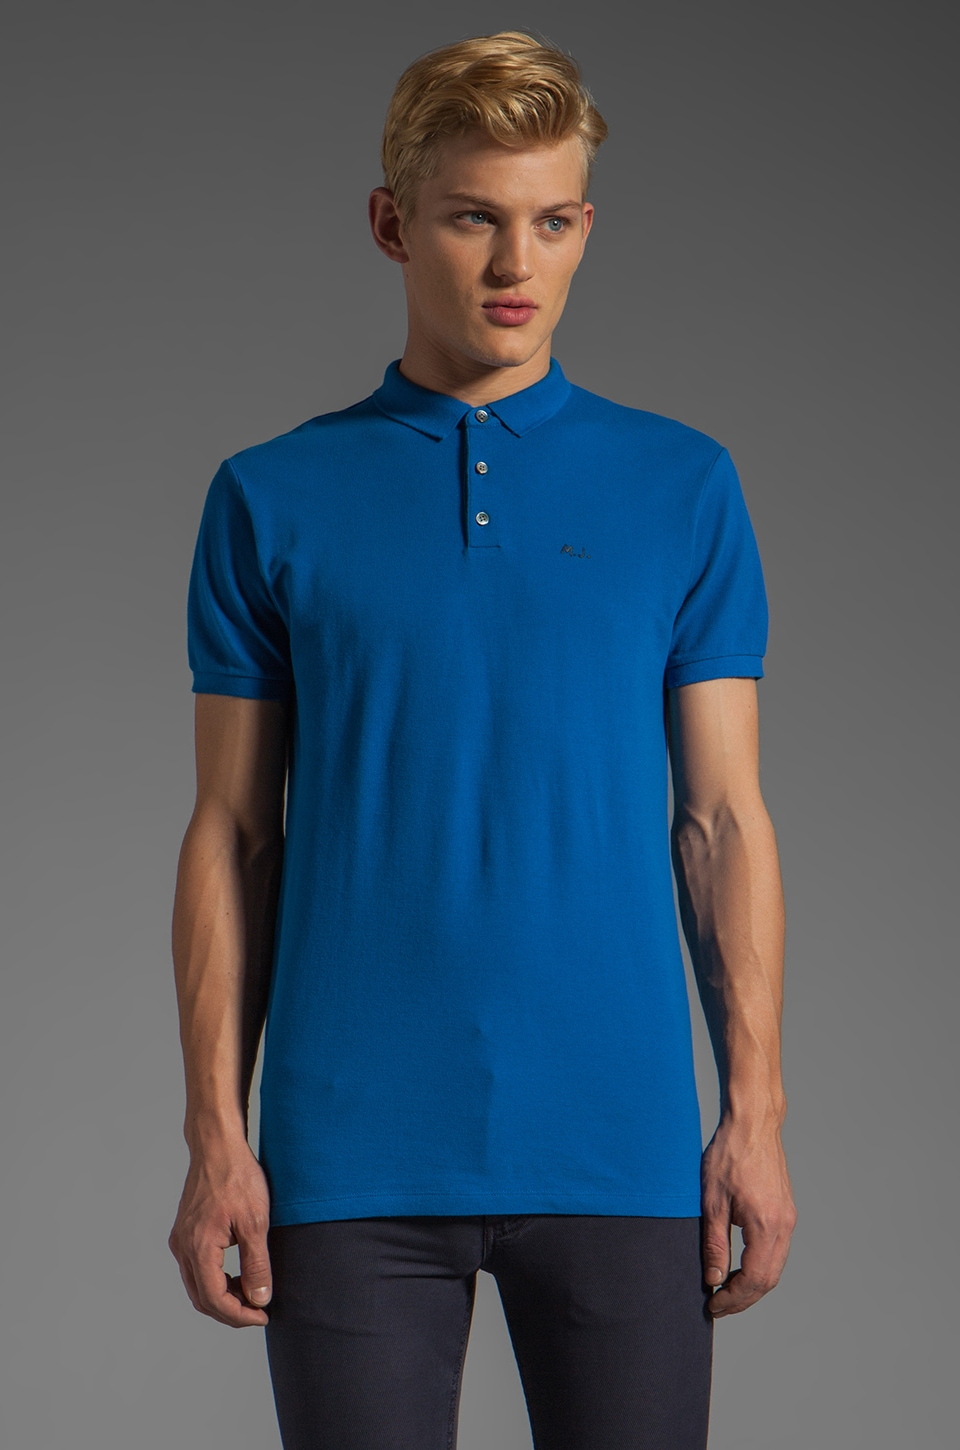 Marc by Marc Jacobs Logo Polo in Fresh Blue